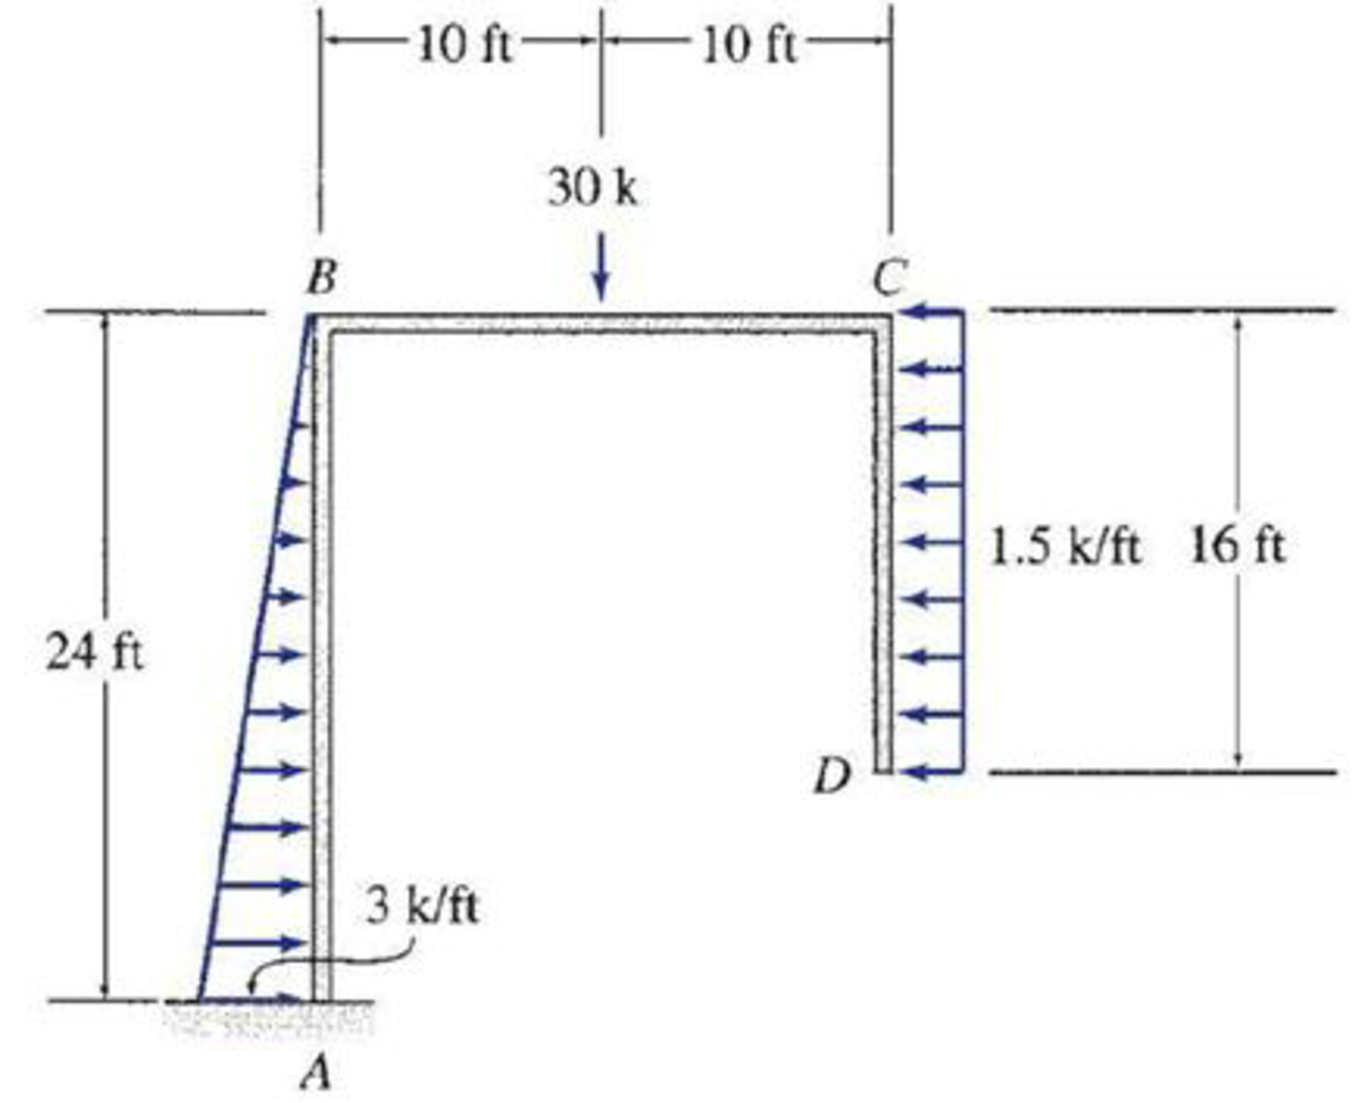 Chapter 5, Problem 69P, 5.57 through 5.71 Draw the shear, bending moment, and axial force diagrams and the qualitative